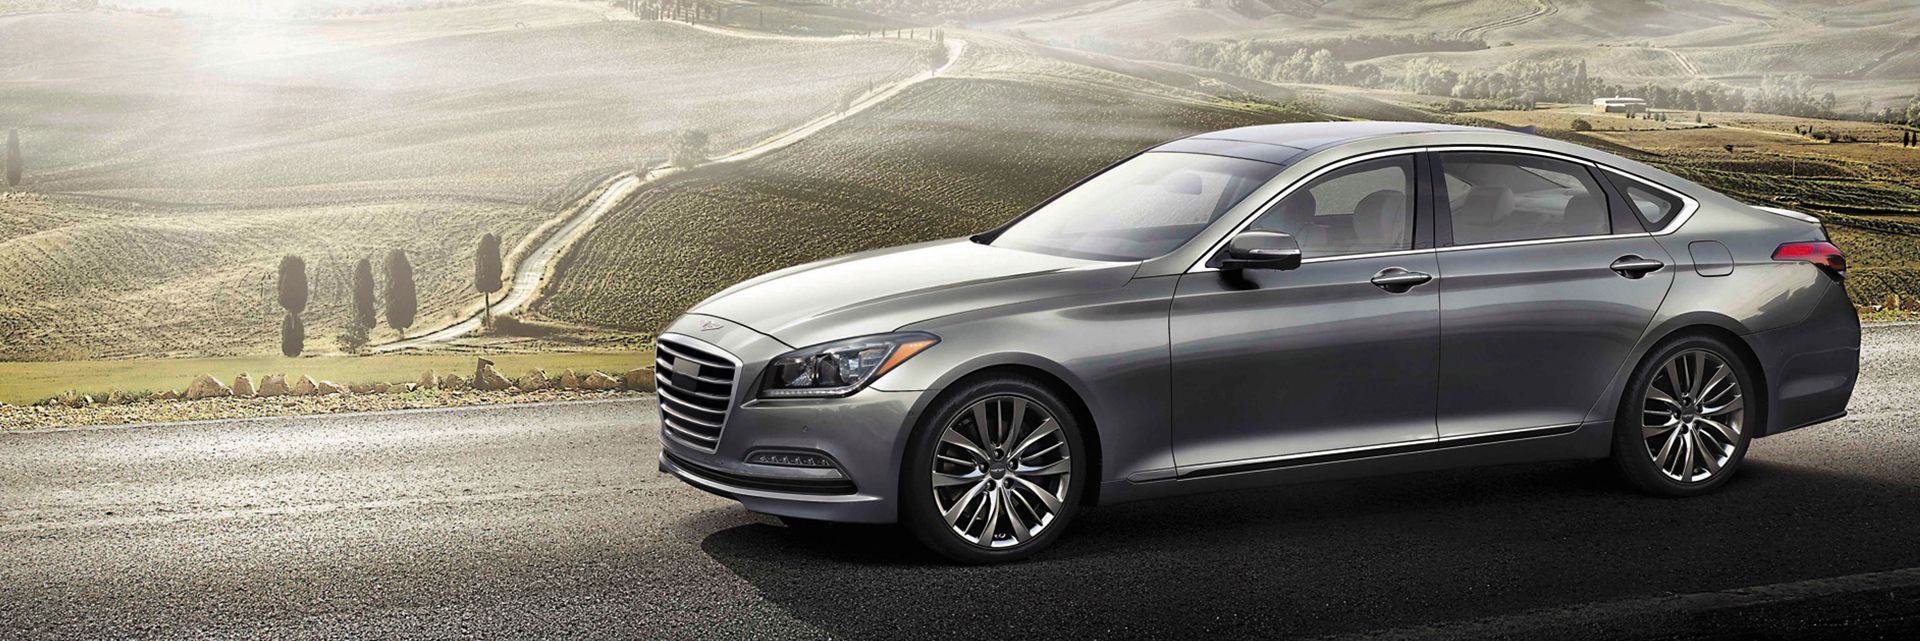 2017 Genesis G80 for Sale in Chantilly, VA